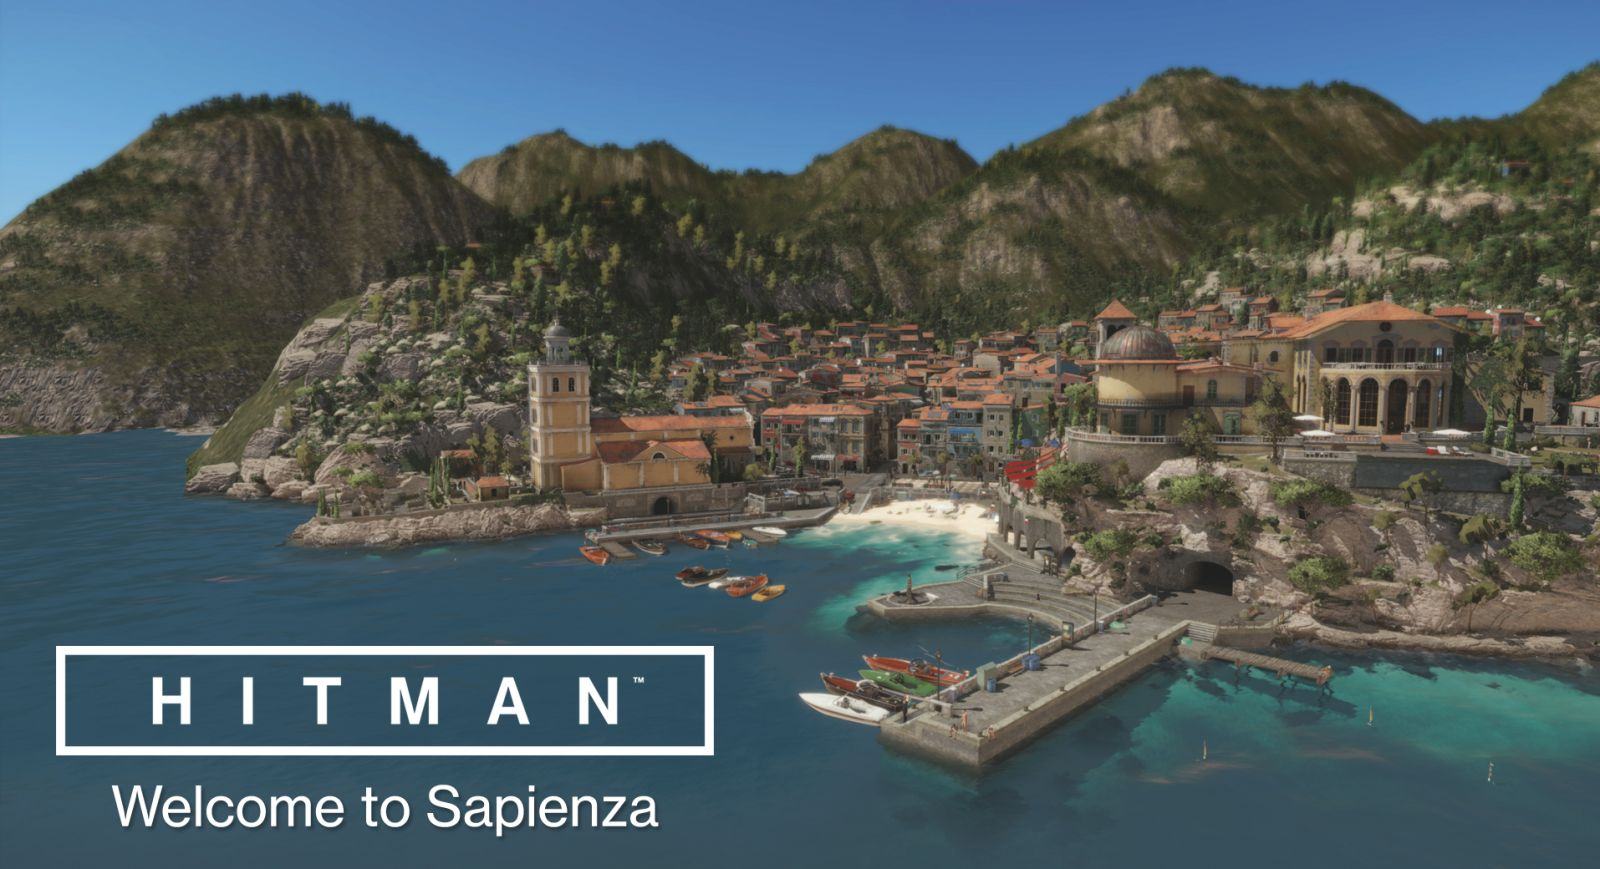 Hitman Goes To Sapienza On April 26 Vampire Magician Pack Now Live